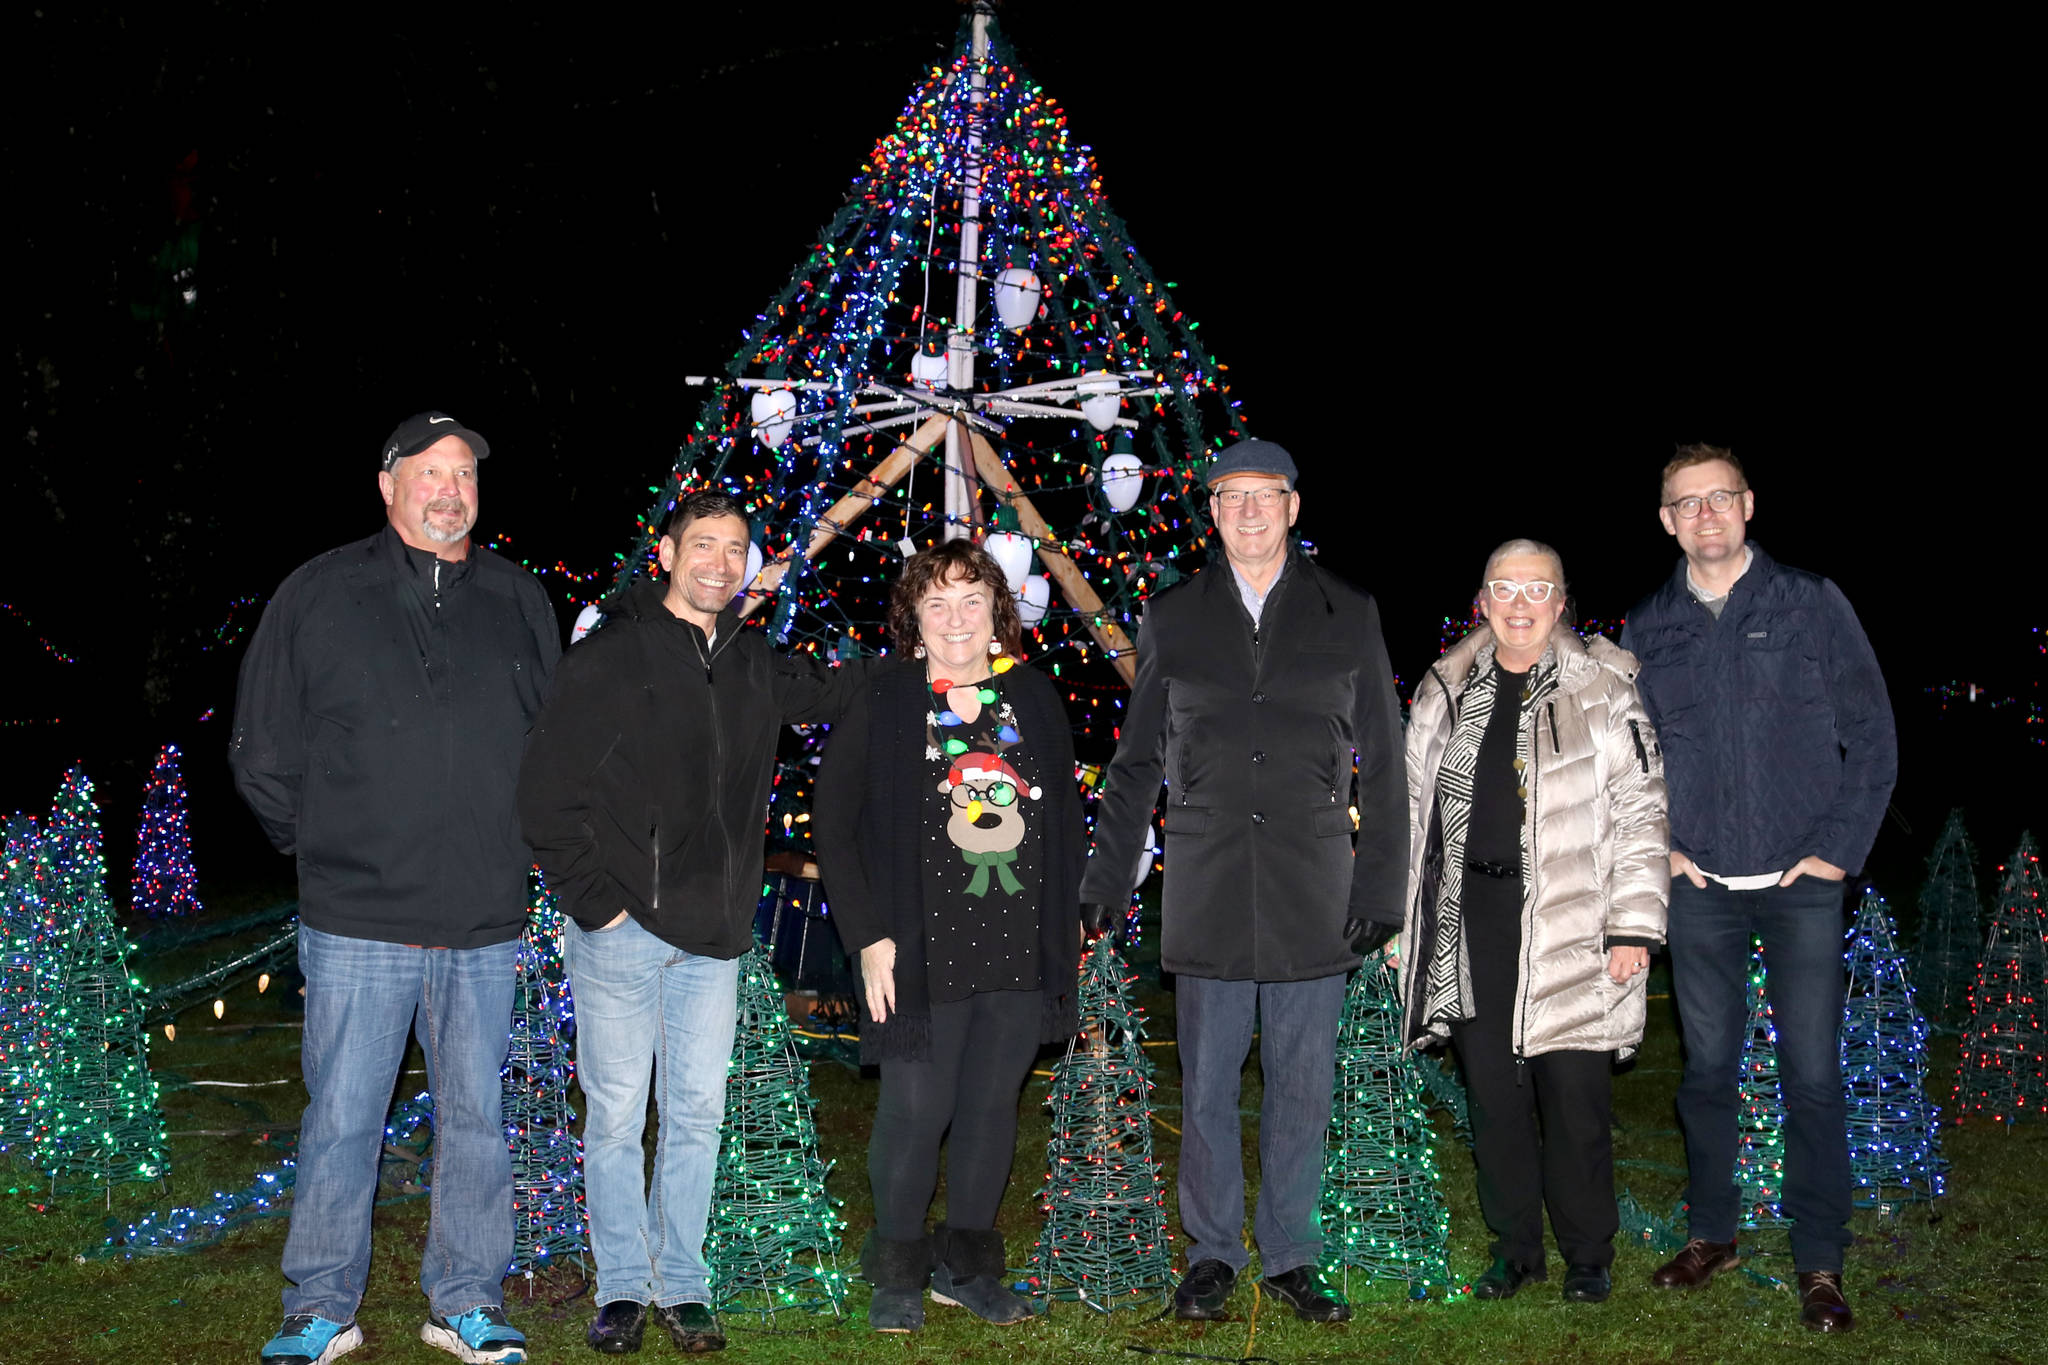 (left) Tab Buckner, Scott Johnson, Barb Sharp, mayor Jack Froese, counc. Kim Richter, counc. Eric Woodwards joined at the opening of Christmas in Williams Park. Miranda Fatur Black Press